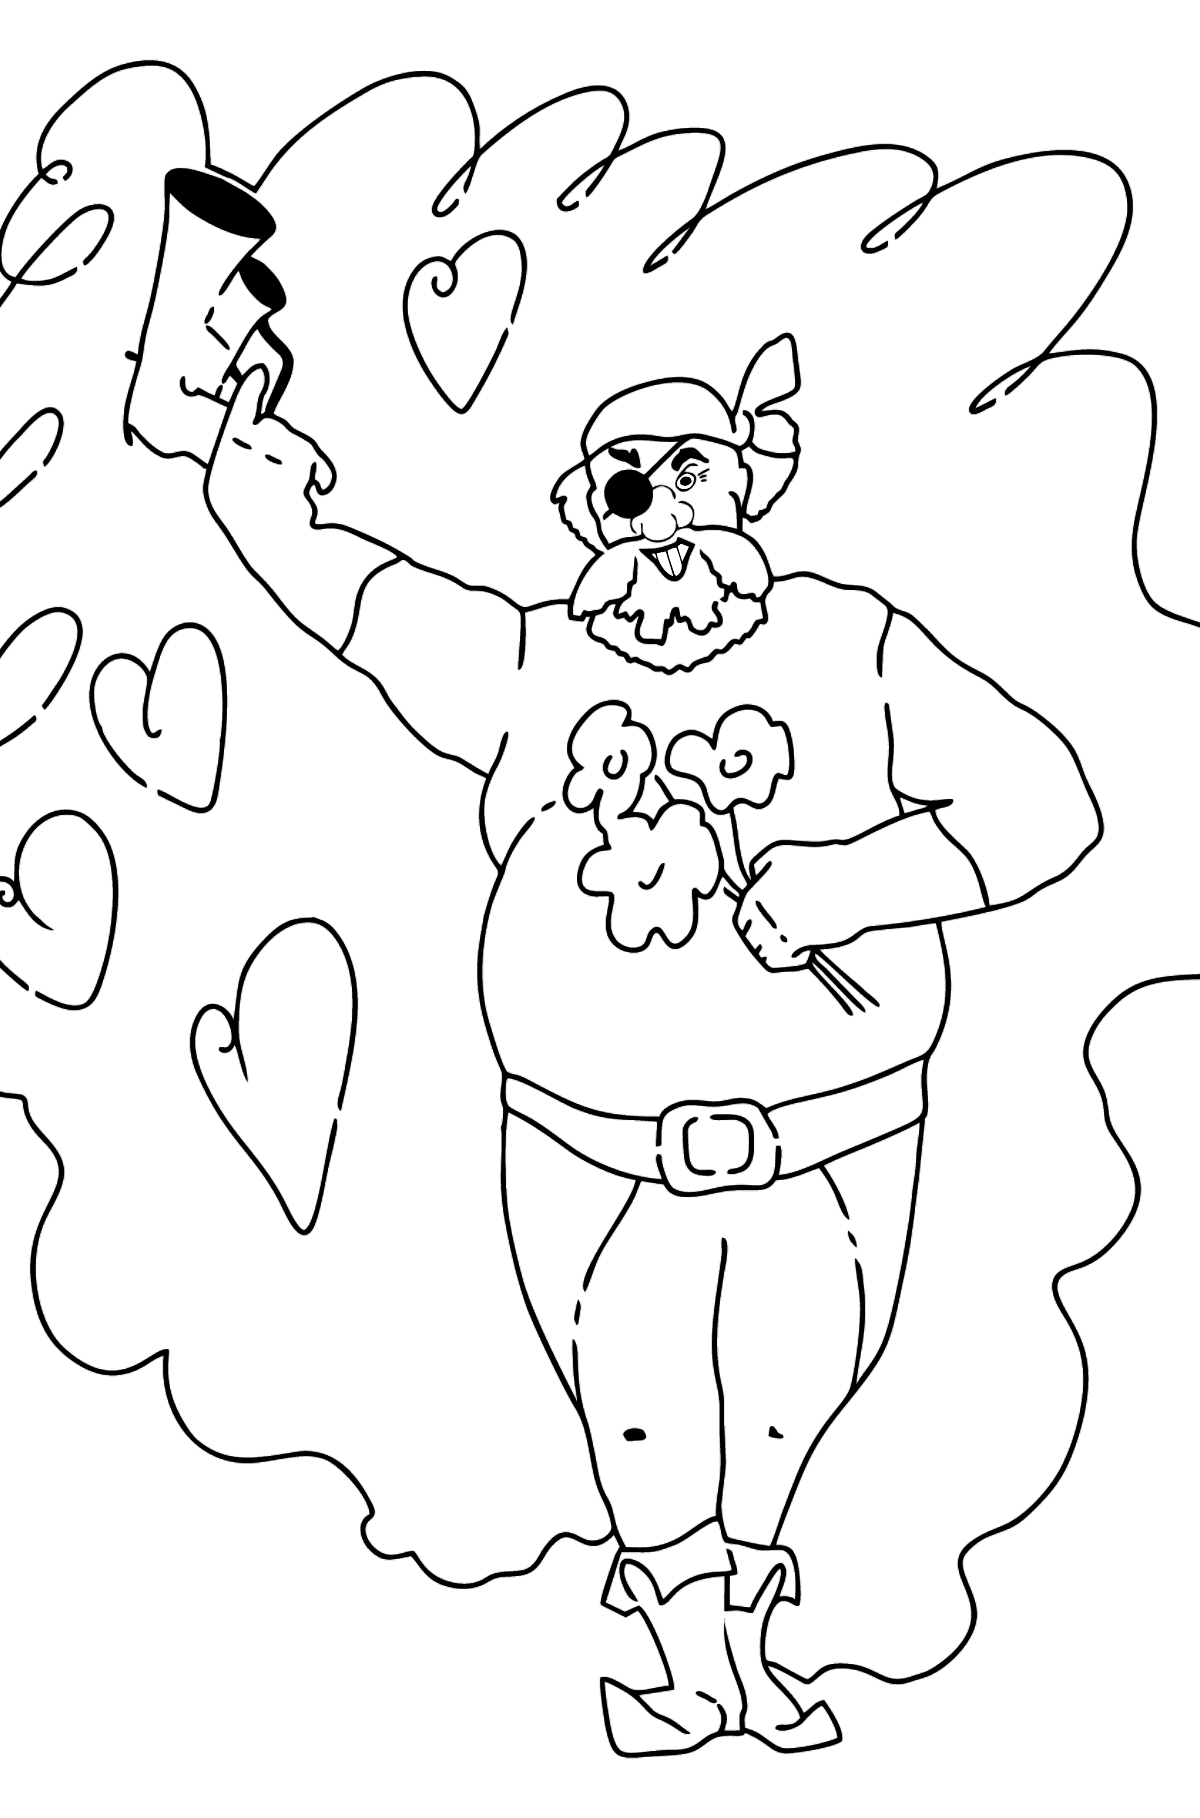 Coloring Page - A Pirate with Flowers - Coloring Pages for Kids